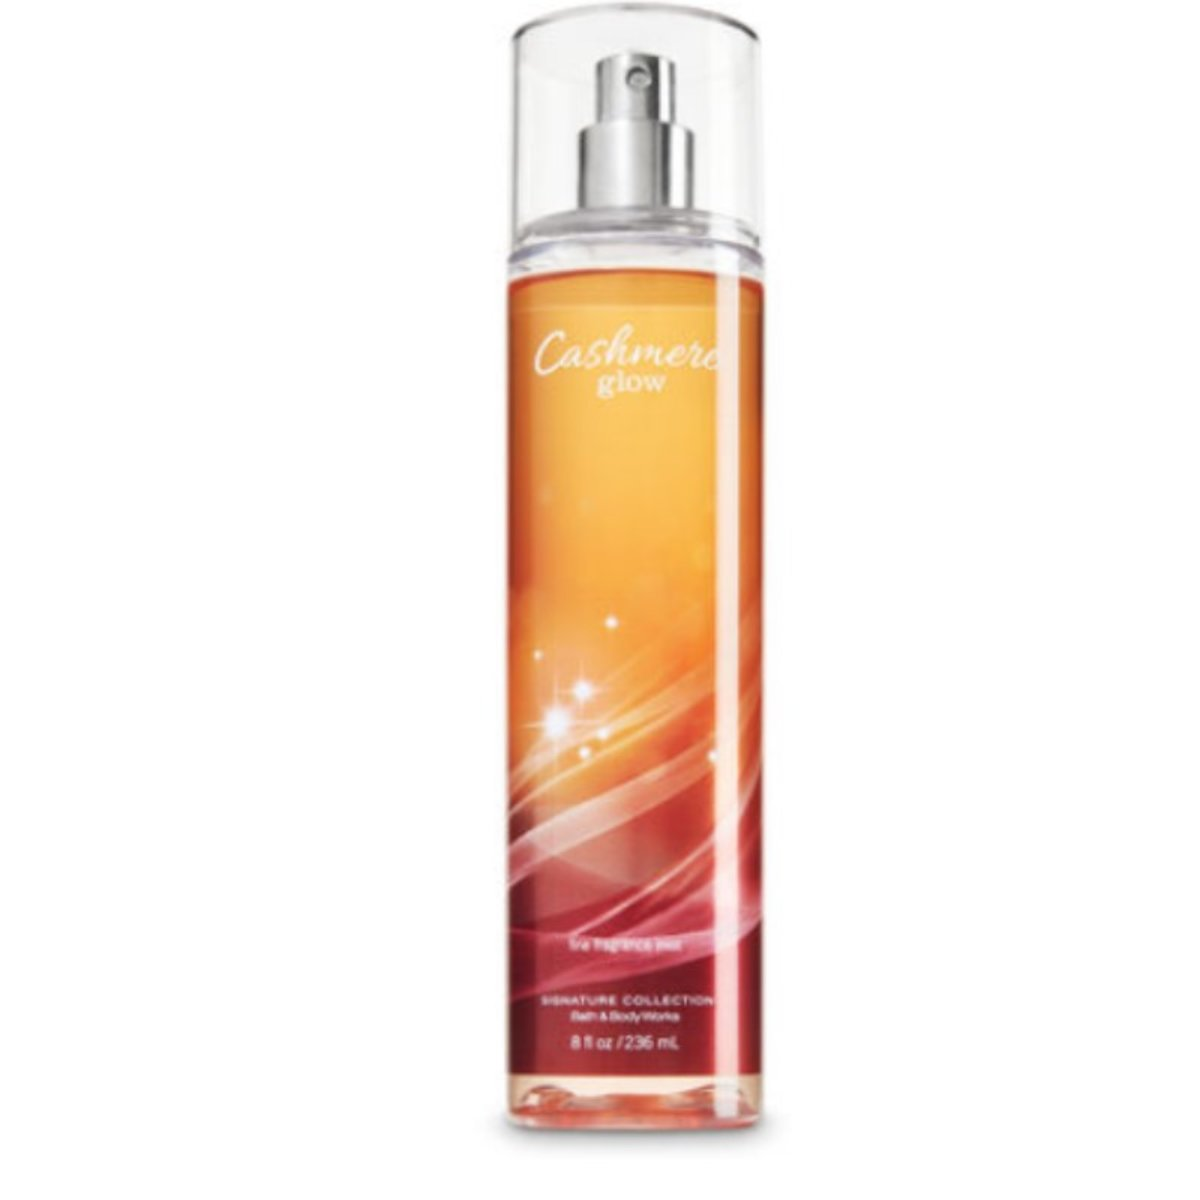 Cashmere Glow Fine Fragrance Mist (Parallel Imports Product)